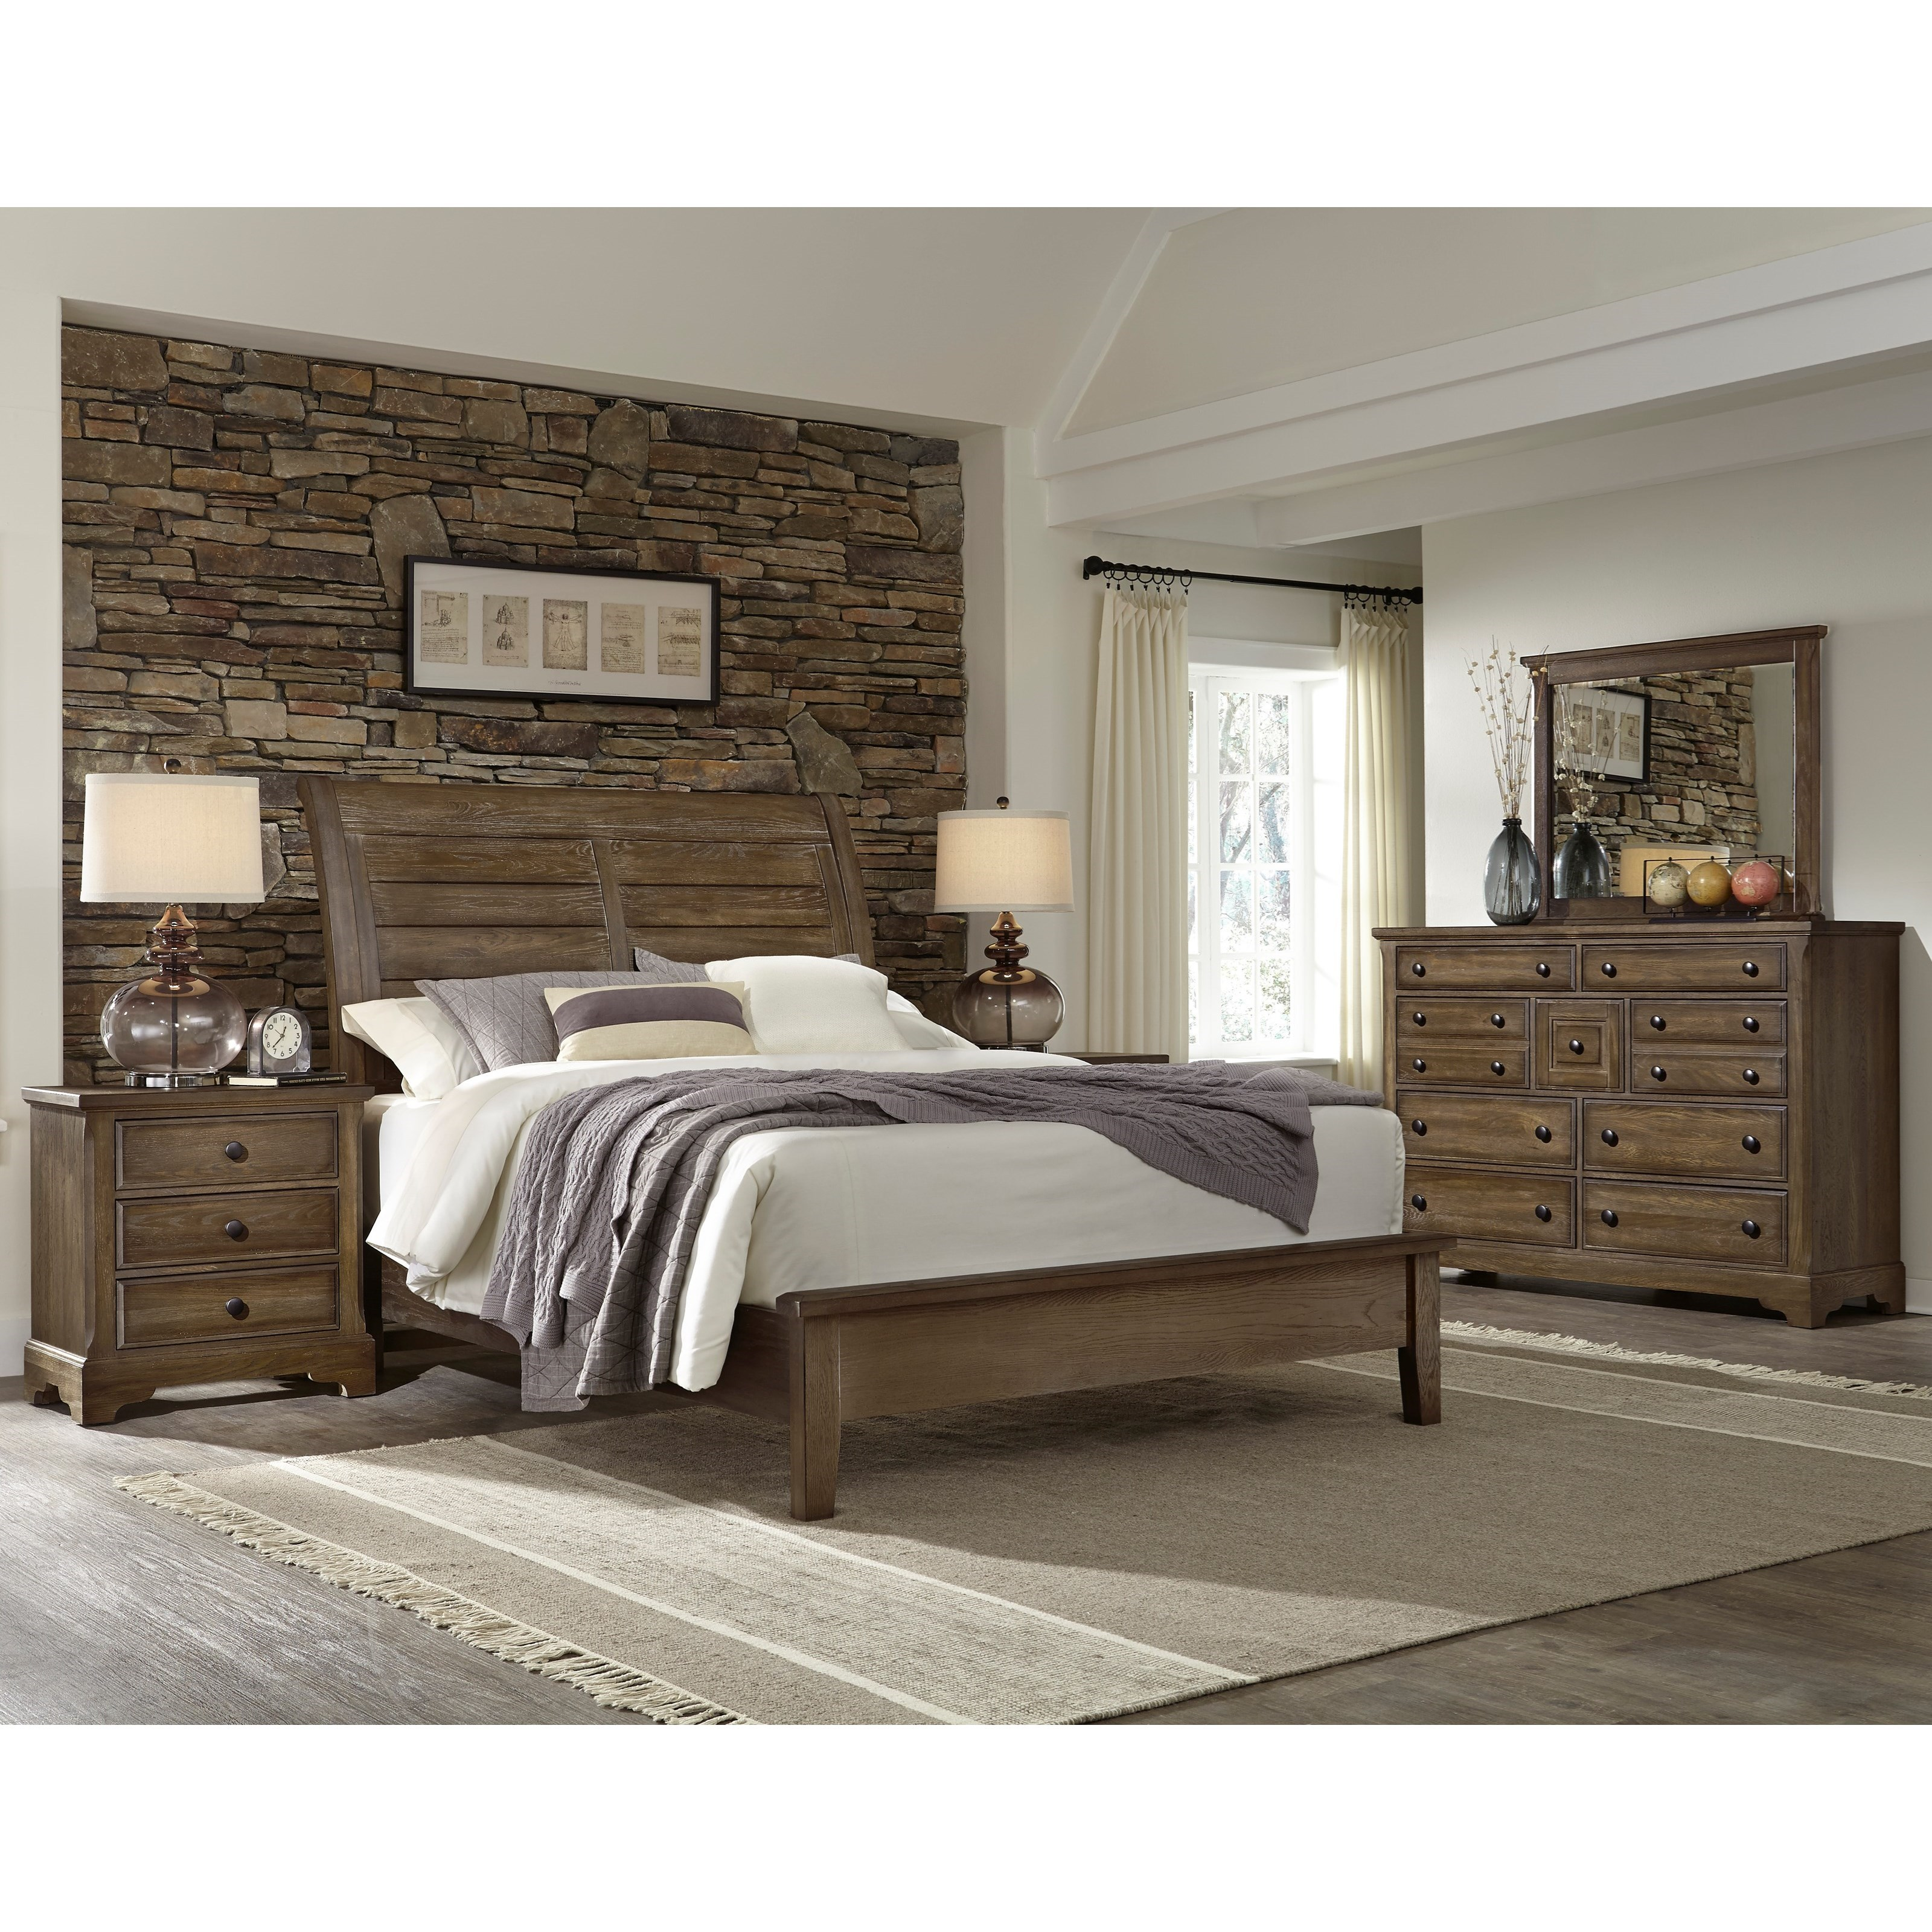 Artisan Choices Queen Bedroom Group by Artisan & Post at Crowley Furniture & Mattress